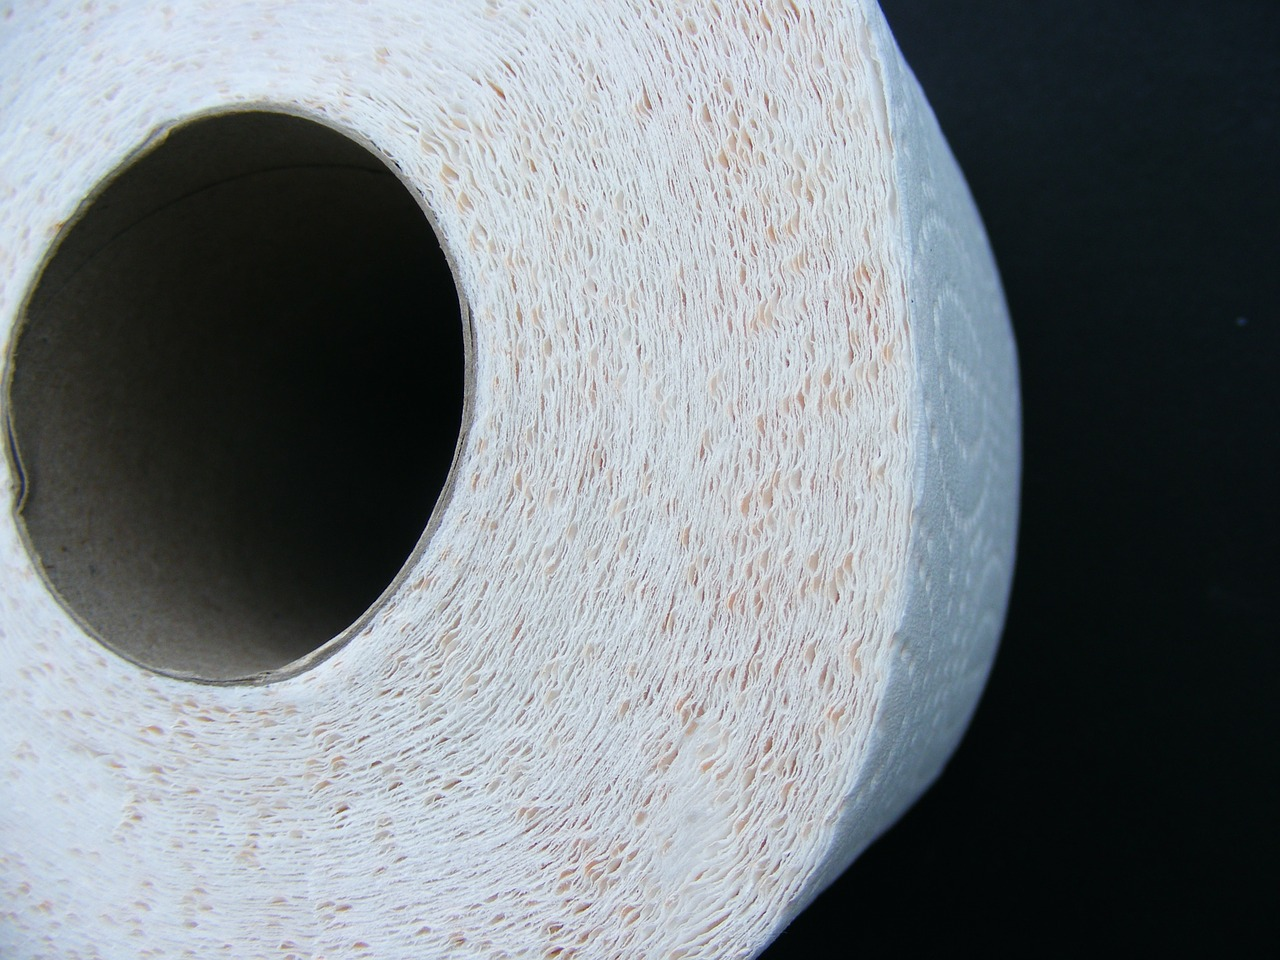 toilet paper,toilet,paper,bathroom,hygiene,roll,clean,sanitary,tissue,restroom,lavatory,wipe,soft,home,household,hygienic,toiletries,free pictures, free photos, free images, royalty free, free illustrations, public domain